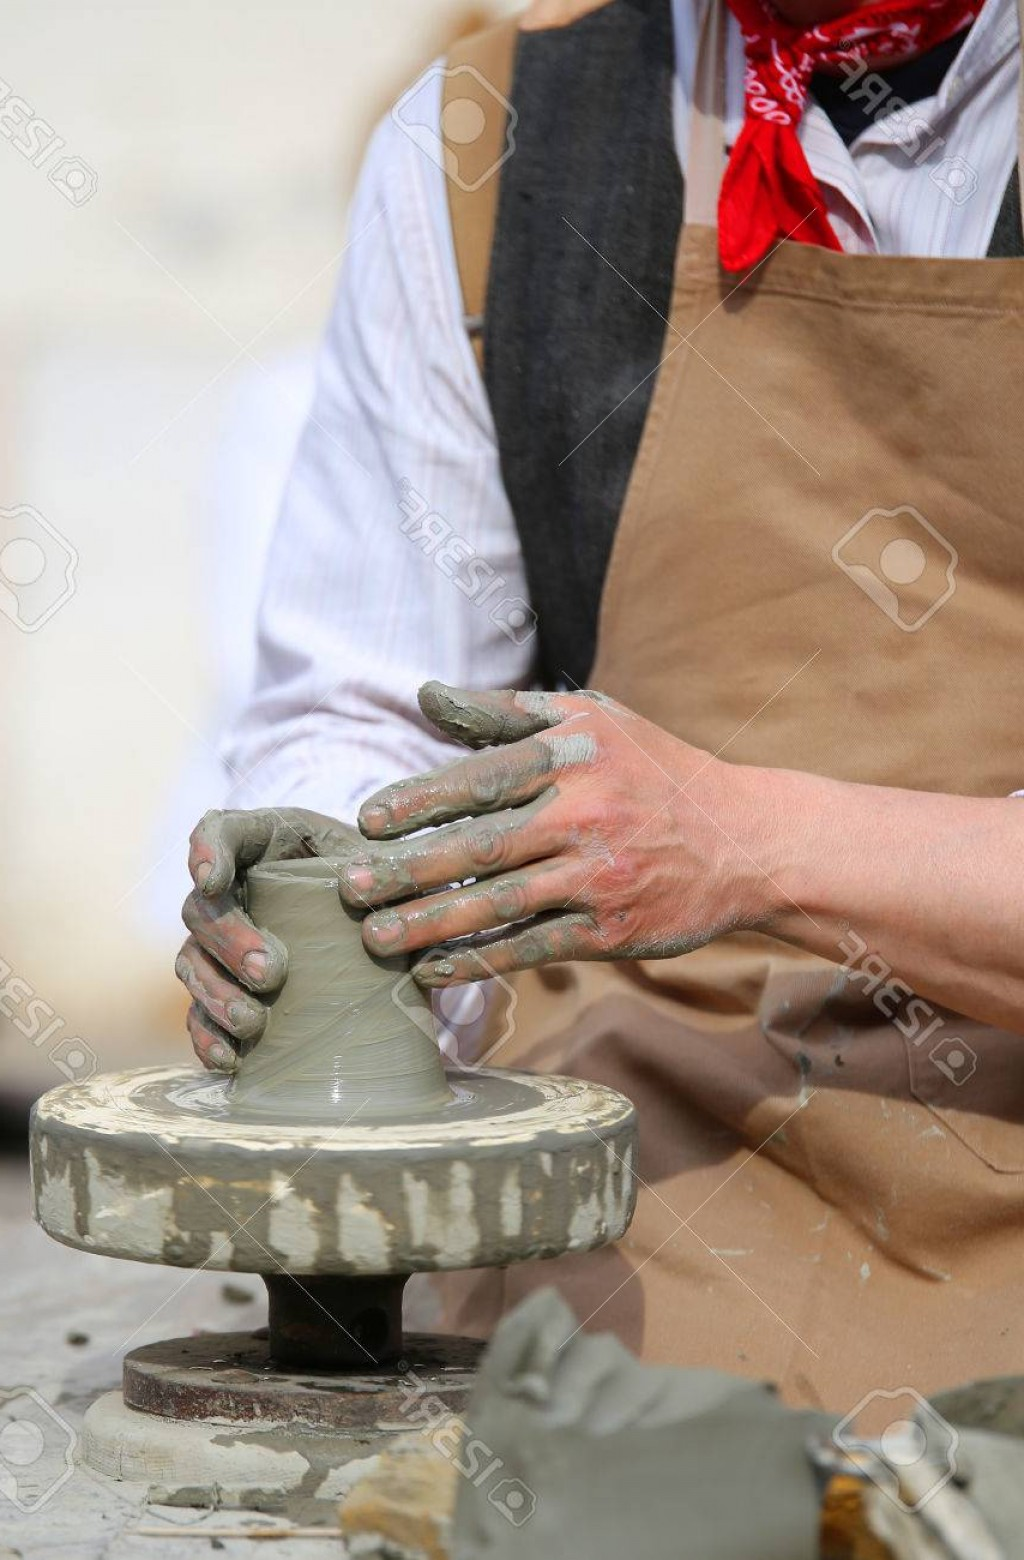 Hand Lathe Vector: Photocraftsman Potter With The Hand Lathe During Production Of A Vase